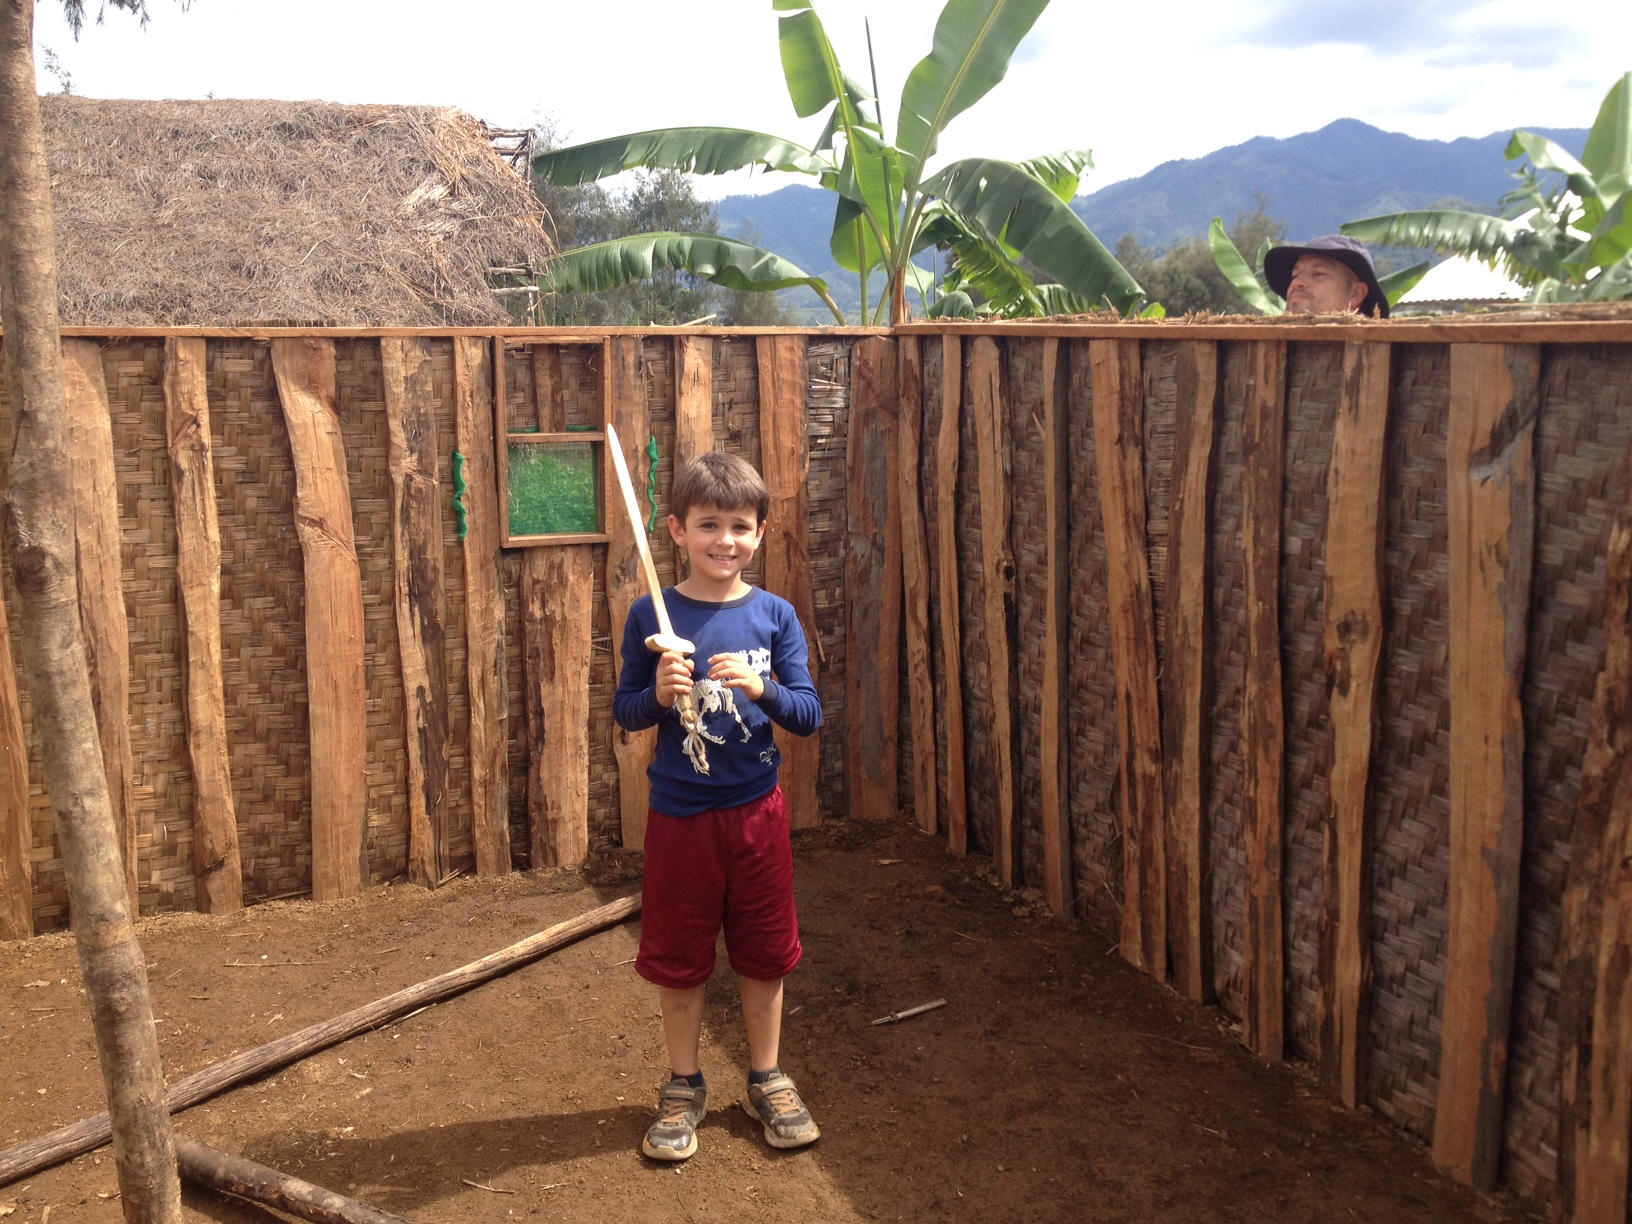 Adam's son explores inside a house that their pastor is building; Tony peeks in.